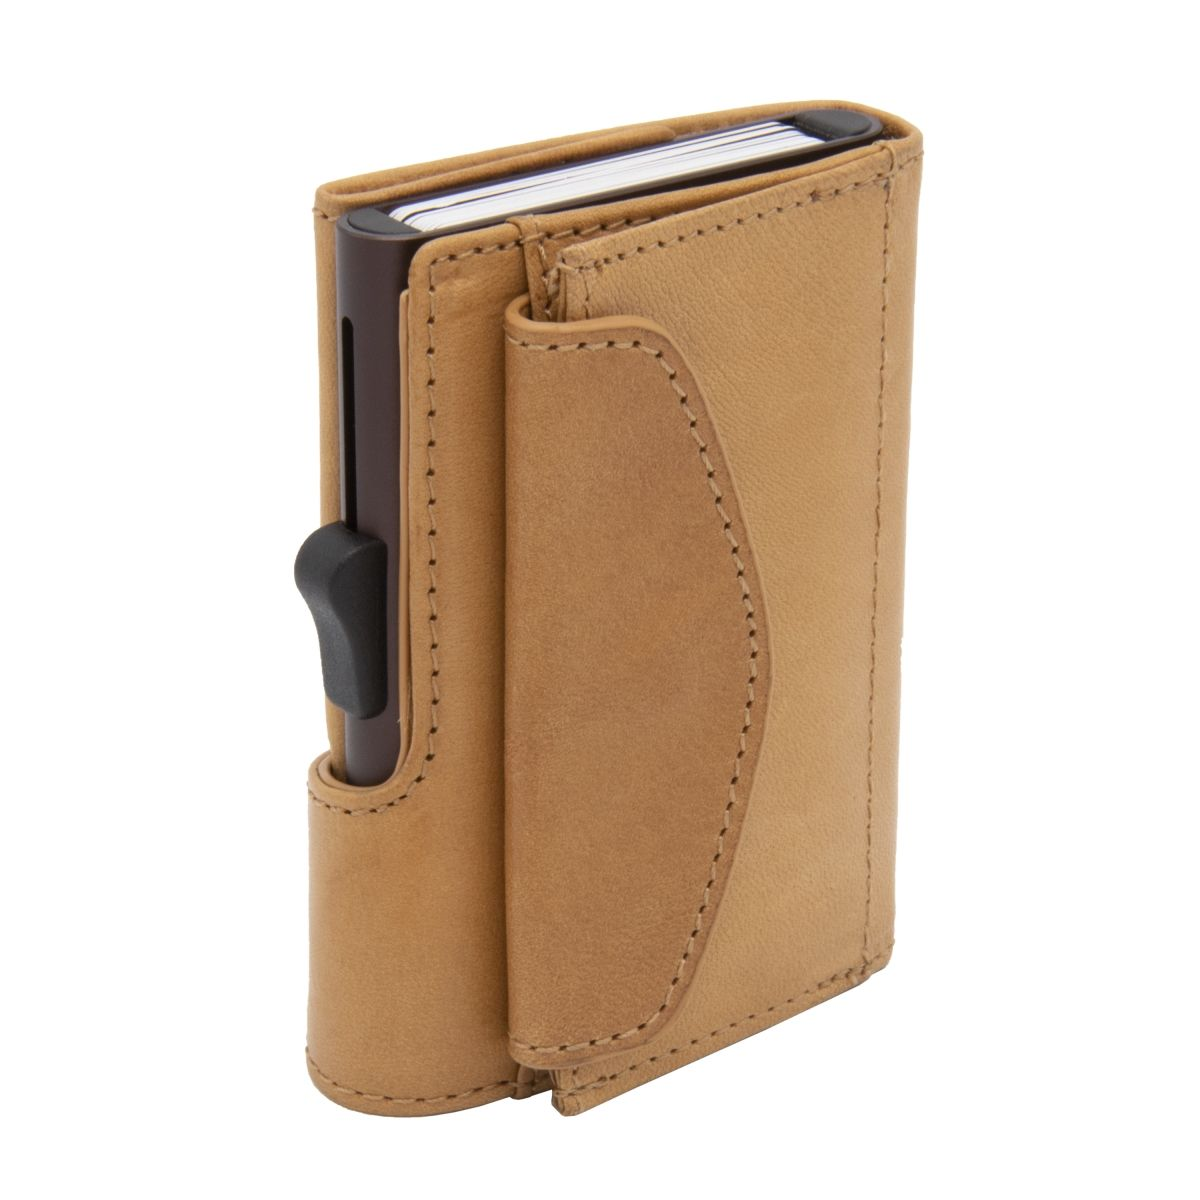 C-Secure XL Aluminum Wallet with Vegetable Genuine Leather and Coins Pocket - Saddle